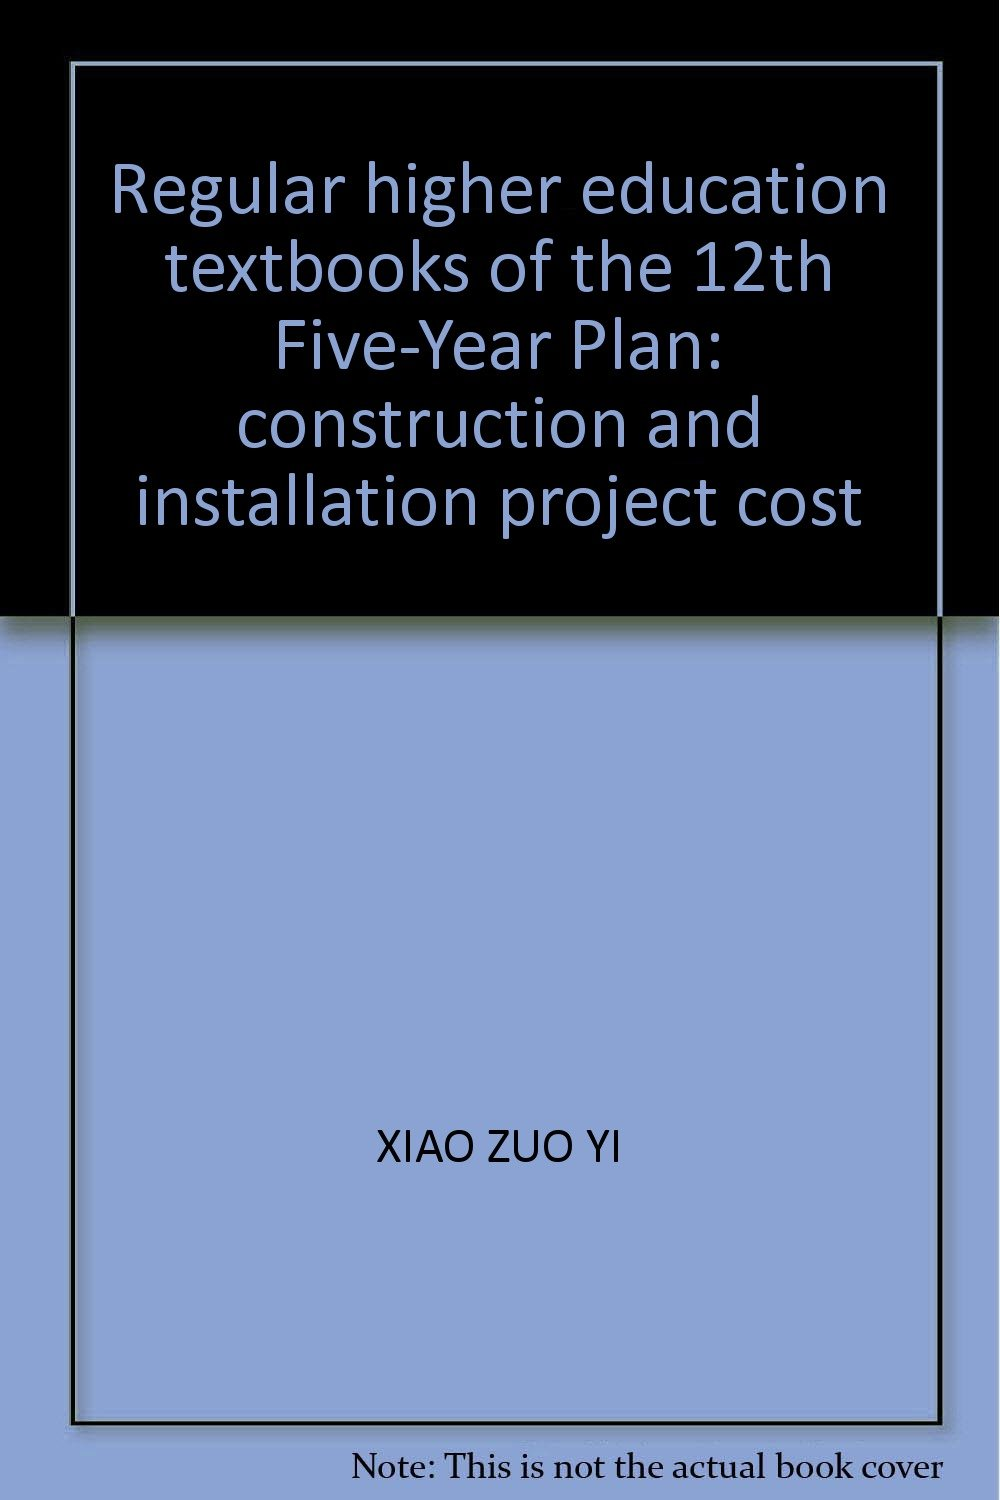 Read Online Regular higher education textbooks of the 12th Five-Year Plan: construction and installation project cost PDF